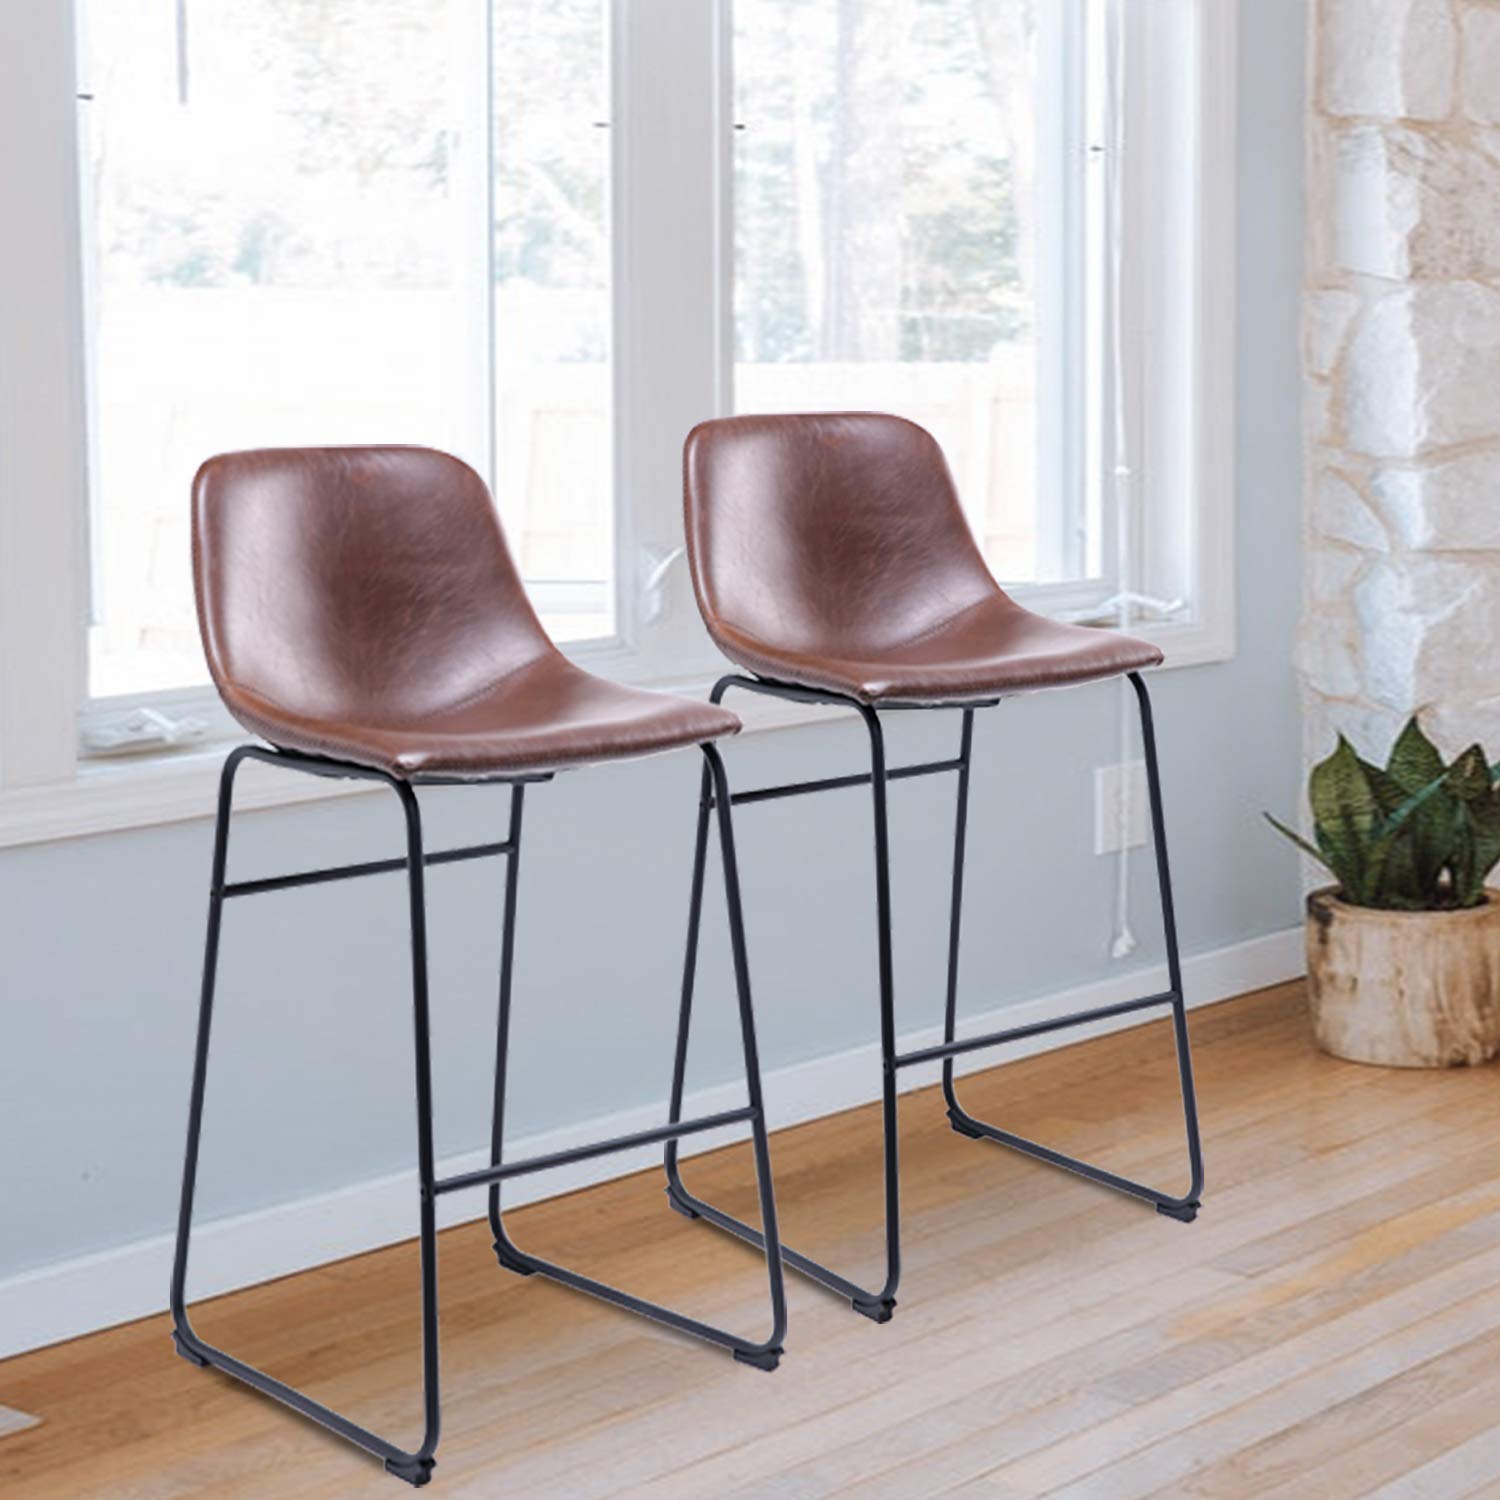 Rfiver PU Leather Bar Stools Dining Chairs Set of 2 with Back and Footrest in Antique Brown, Suitable for Kitchen and Dining Room, BS1002